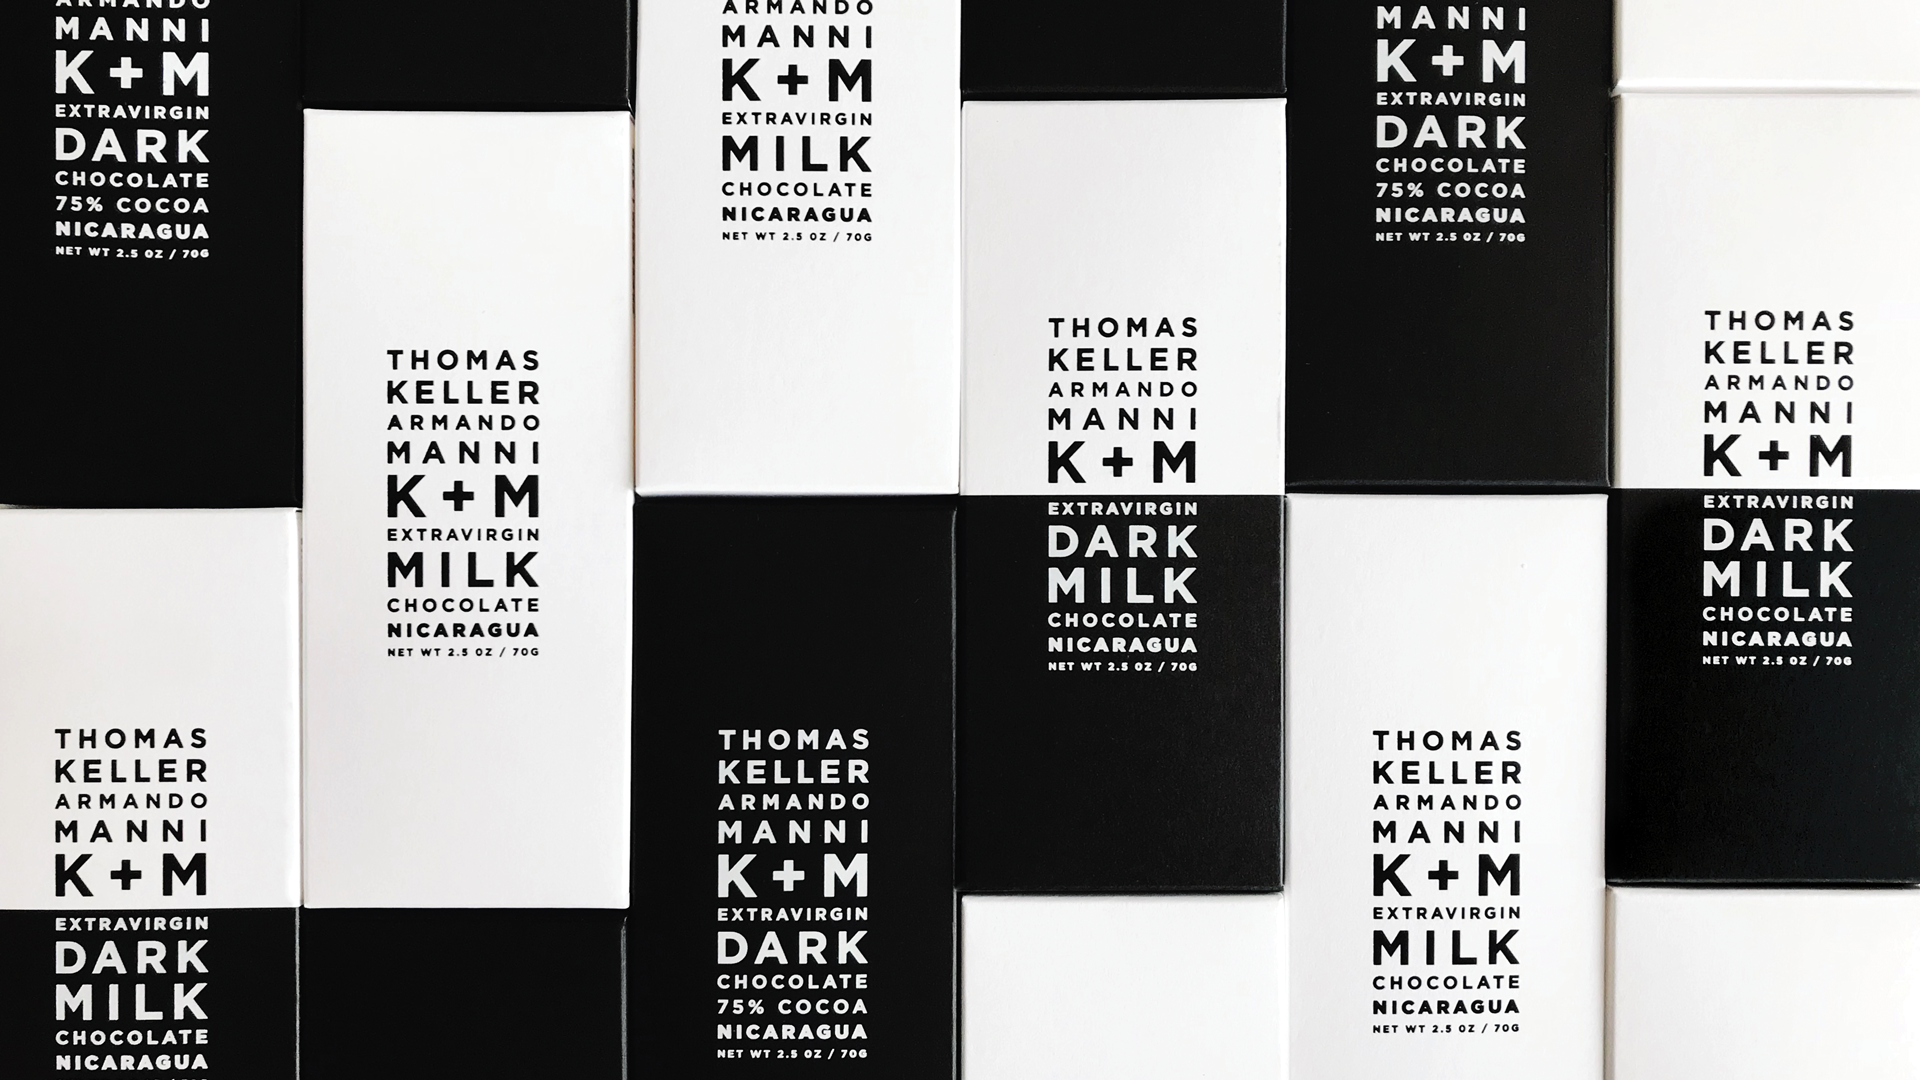 K+M Chocolate Packaging by Morla Design - PaperSpecs